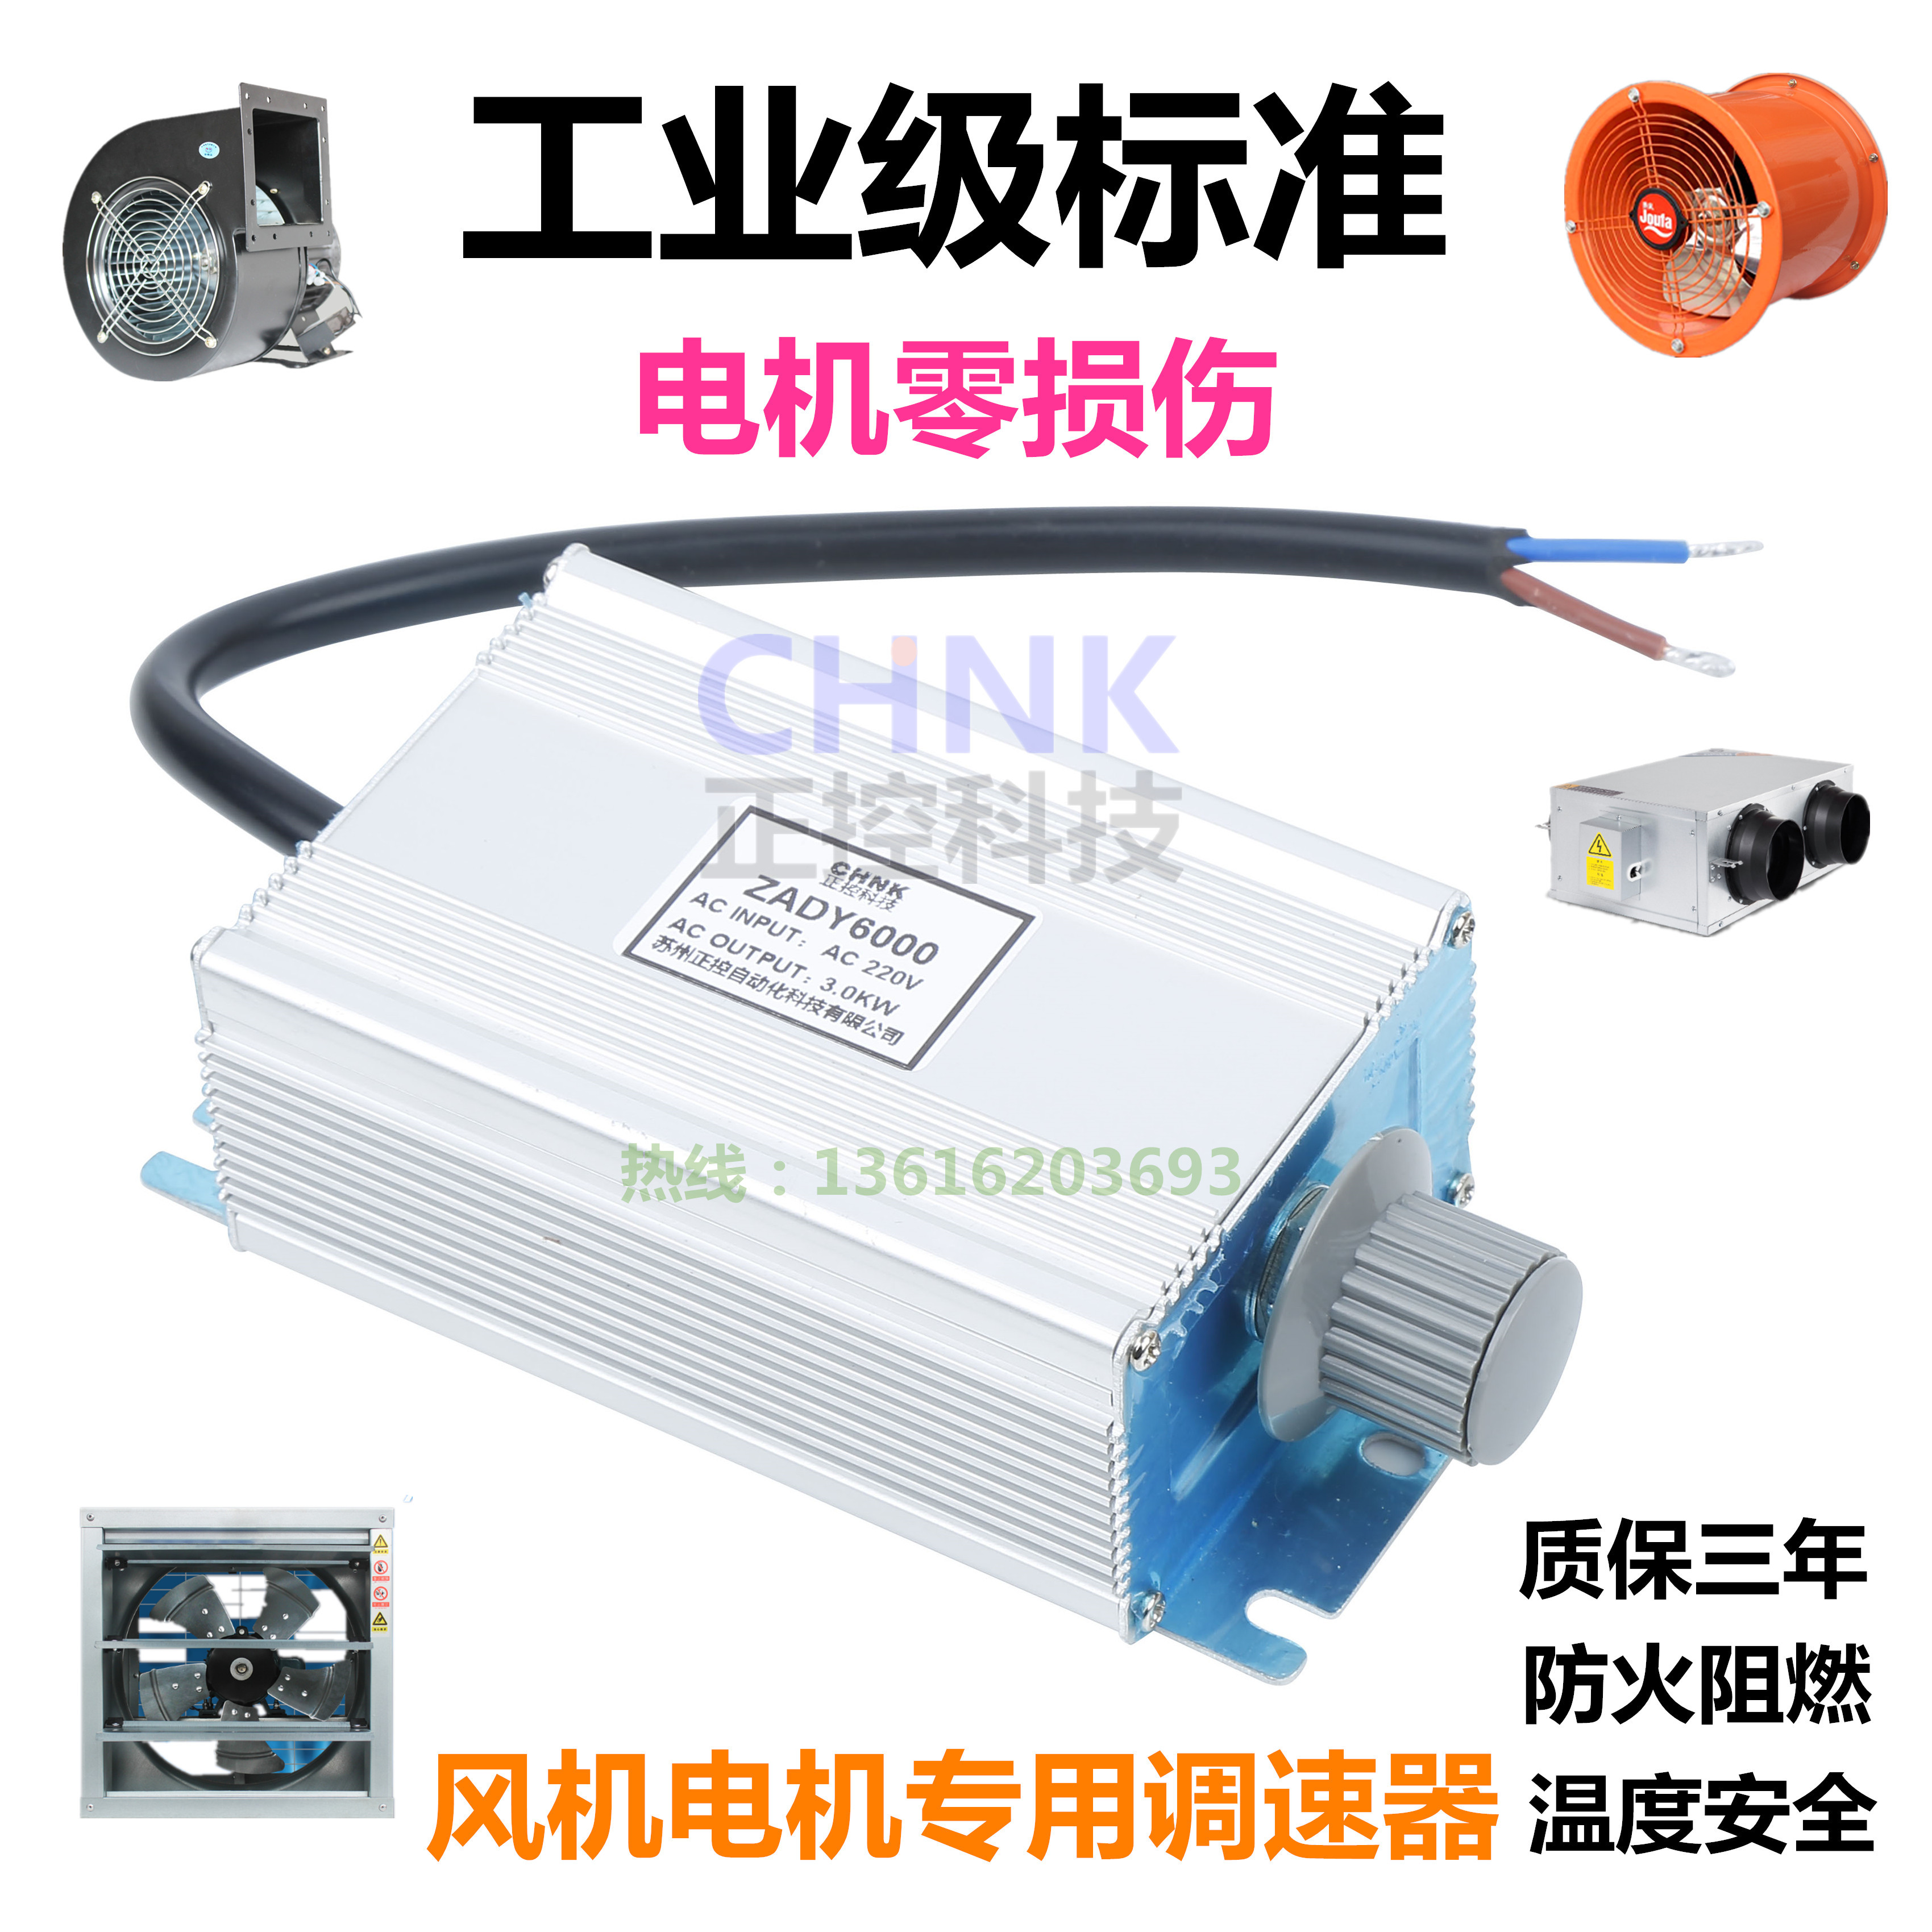 Single Phase 220v High Power Ac Fan Motor Governor Zady6000 Electrical Wiring 220 Blower Photos